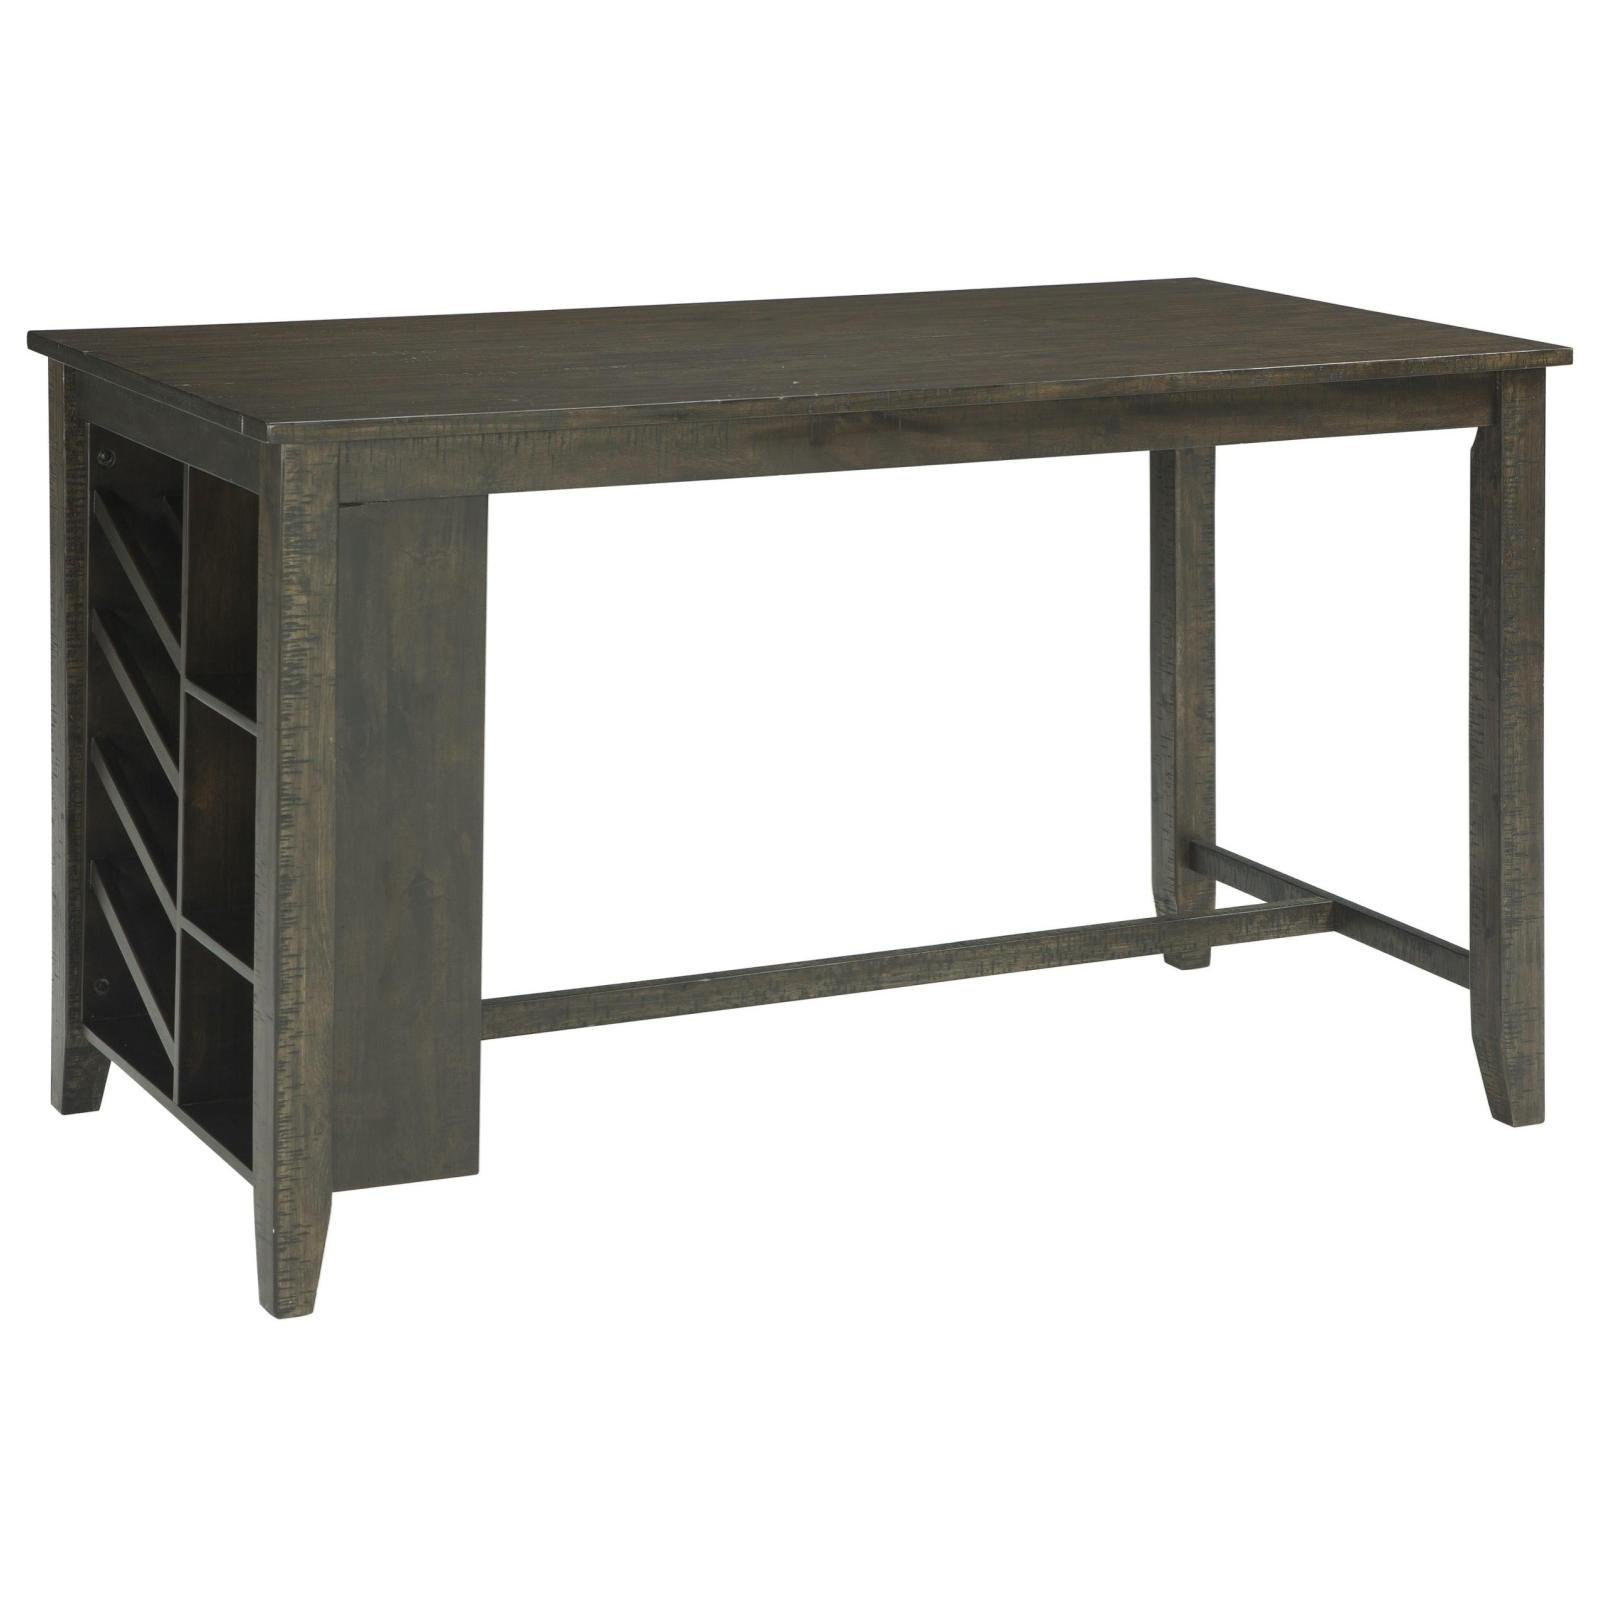 See Furniture For Dining Area Site This Year @house2homegoods.net